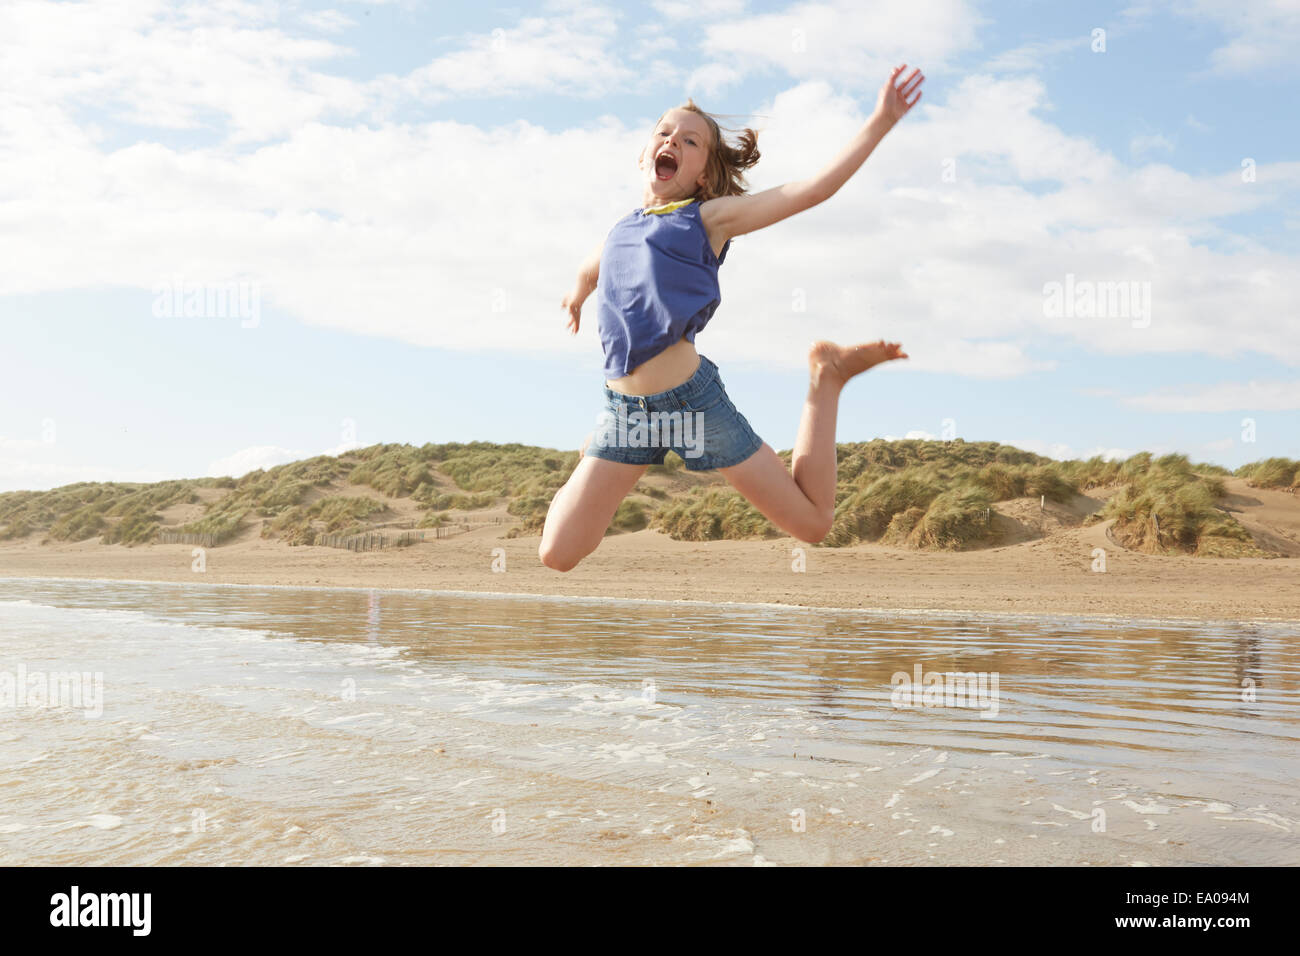 Girl jumping mid air on beach, Camber Sands, Kent, UK - Stock Image